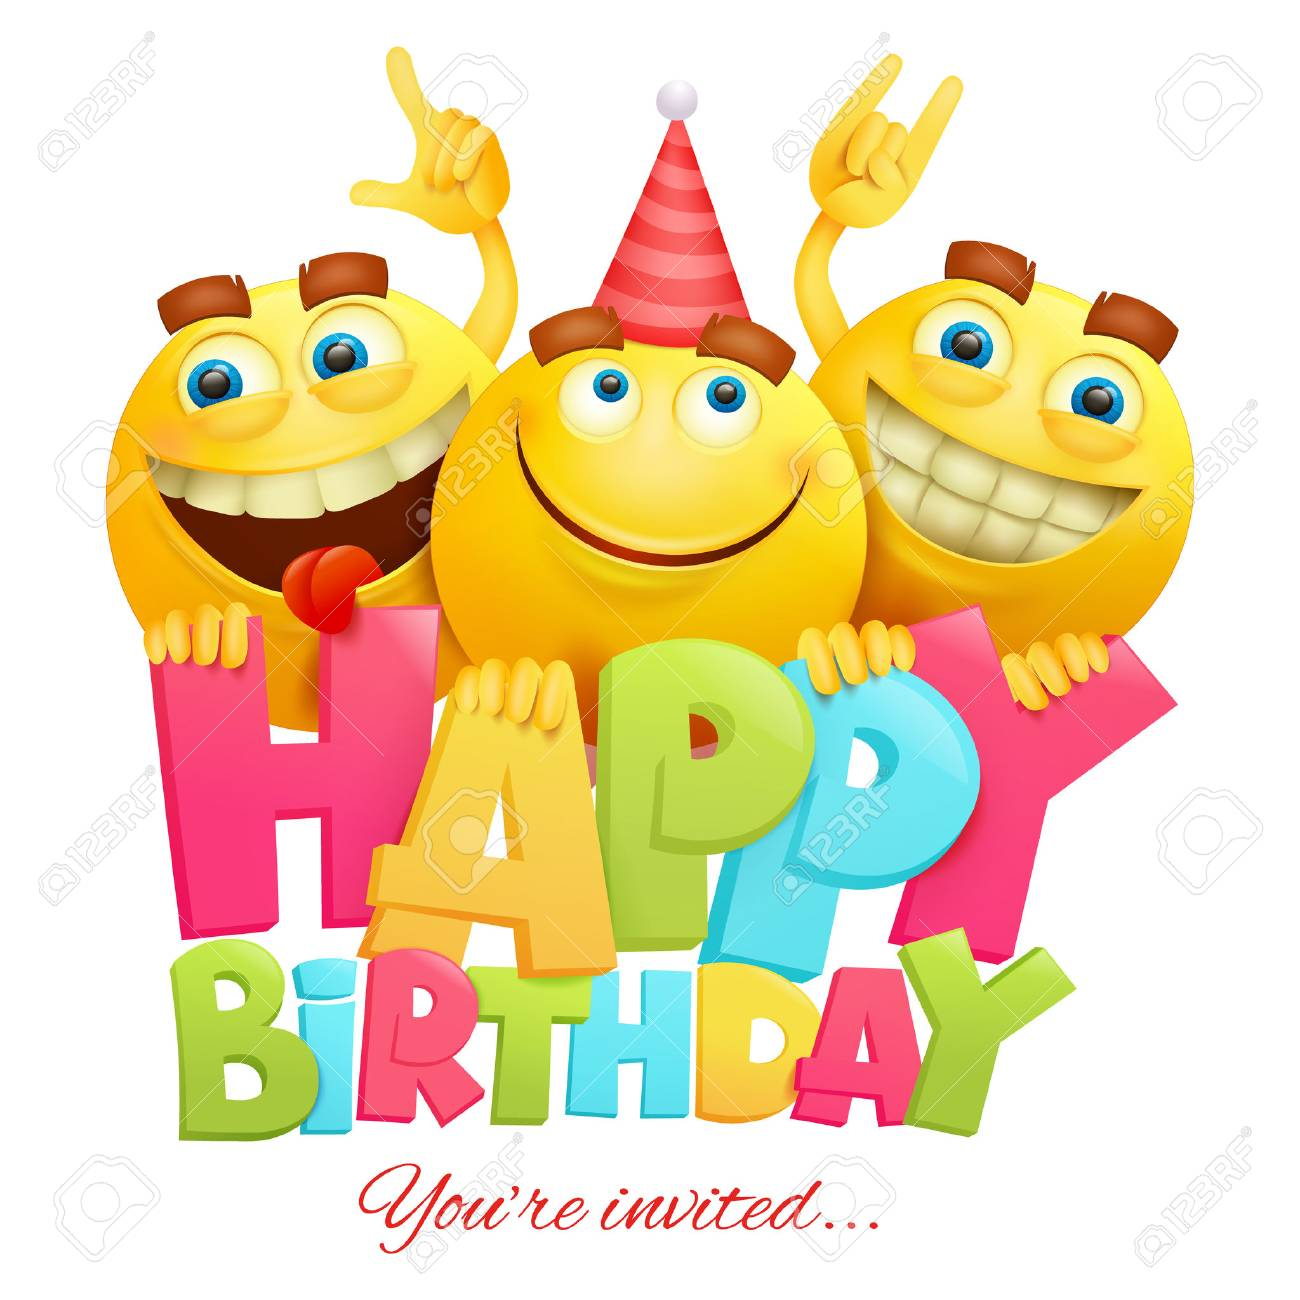 Happy Birthday Invitation Card Template With Three Emoji Characters